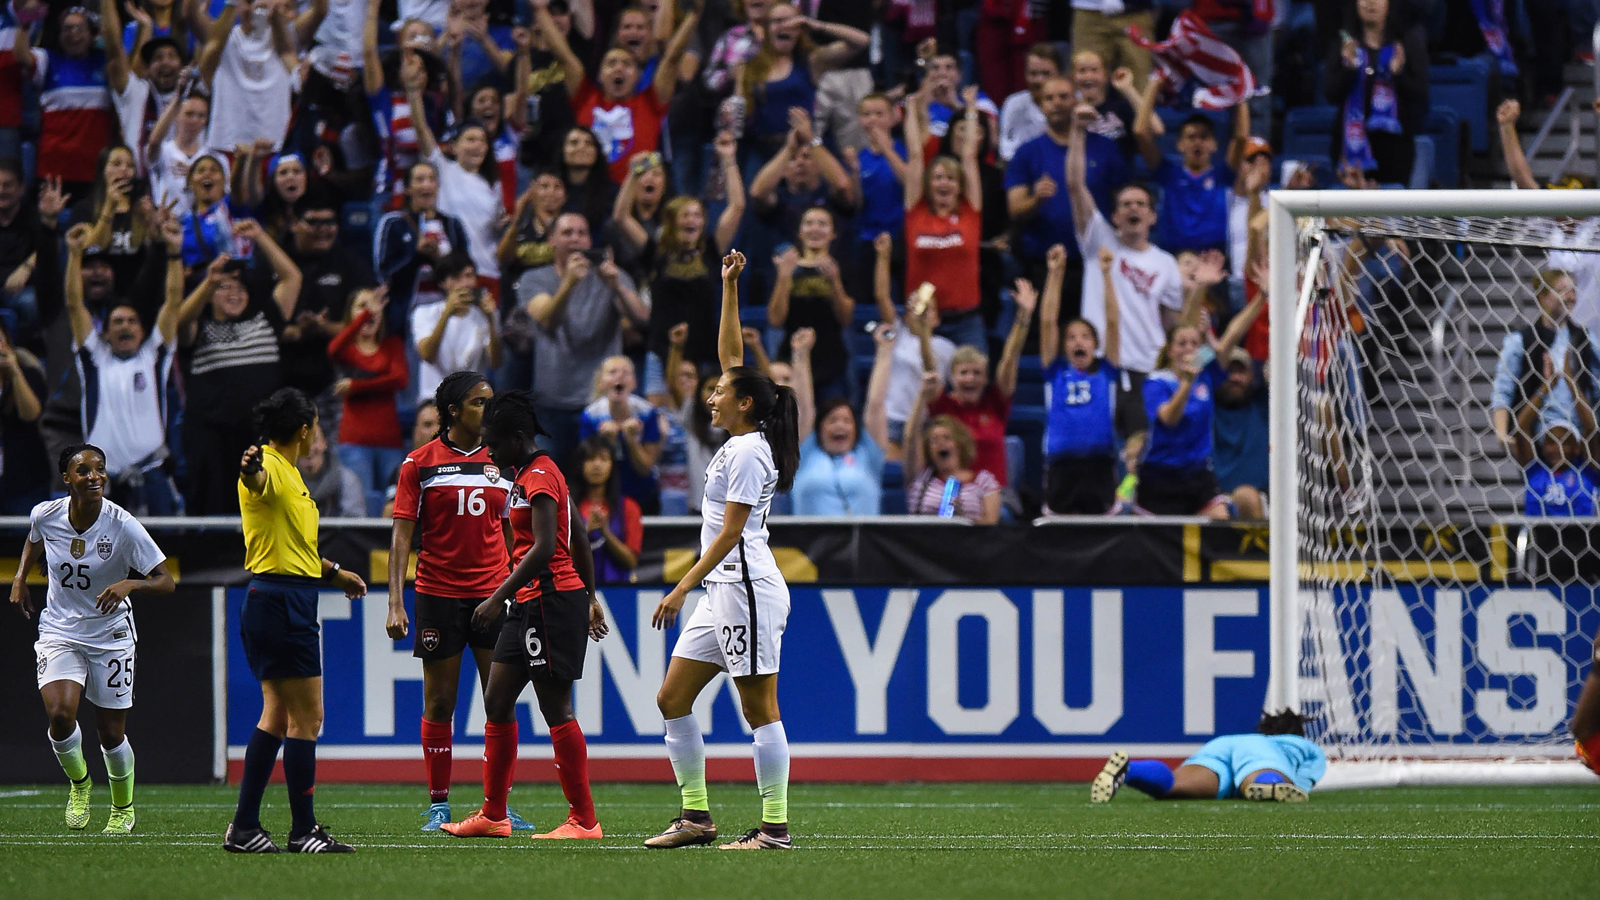 Christen Press triumphantly raises her hand after a goal during her hat trick in a 6-0 rout of Trinidad & Tobago at the Alamodome in San Antonio.